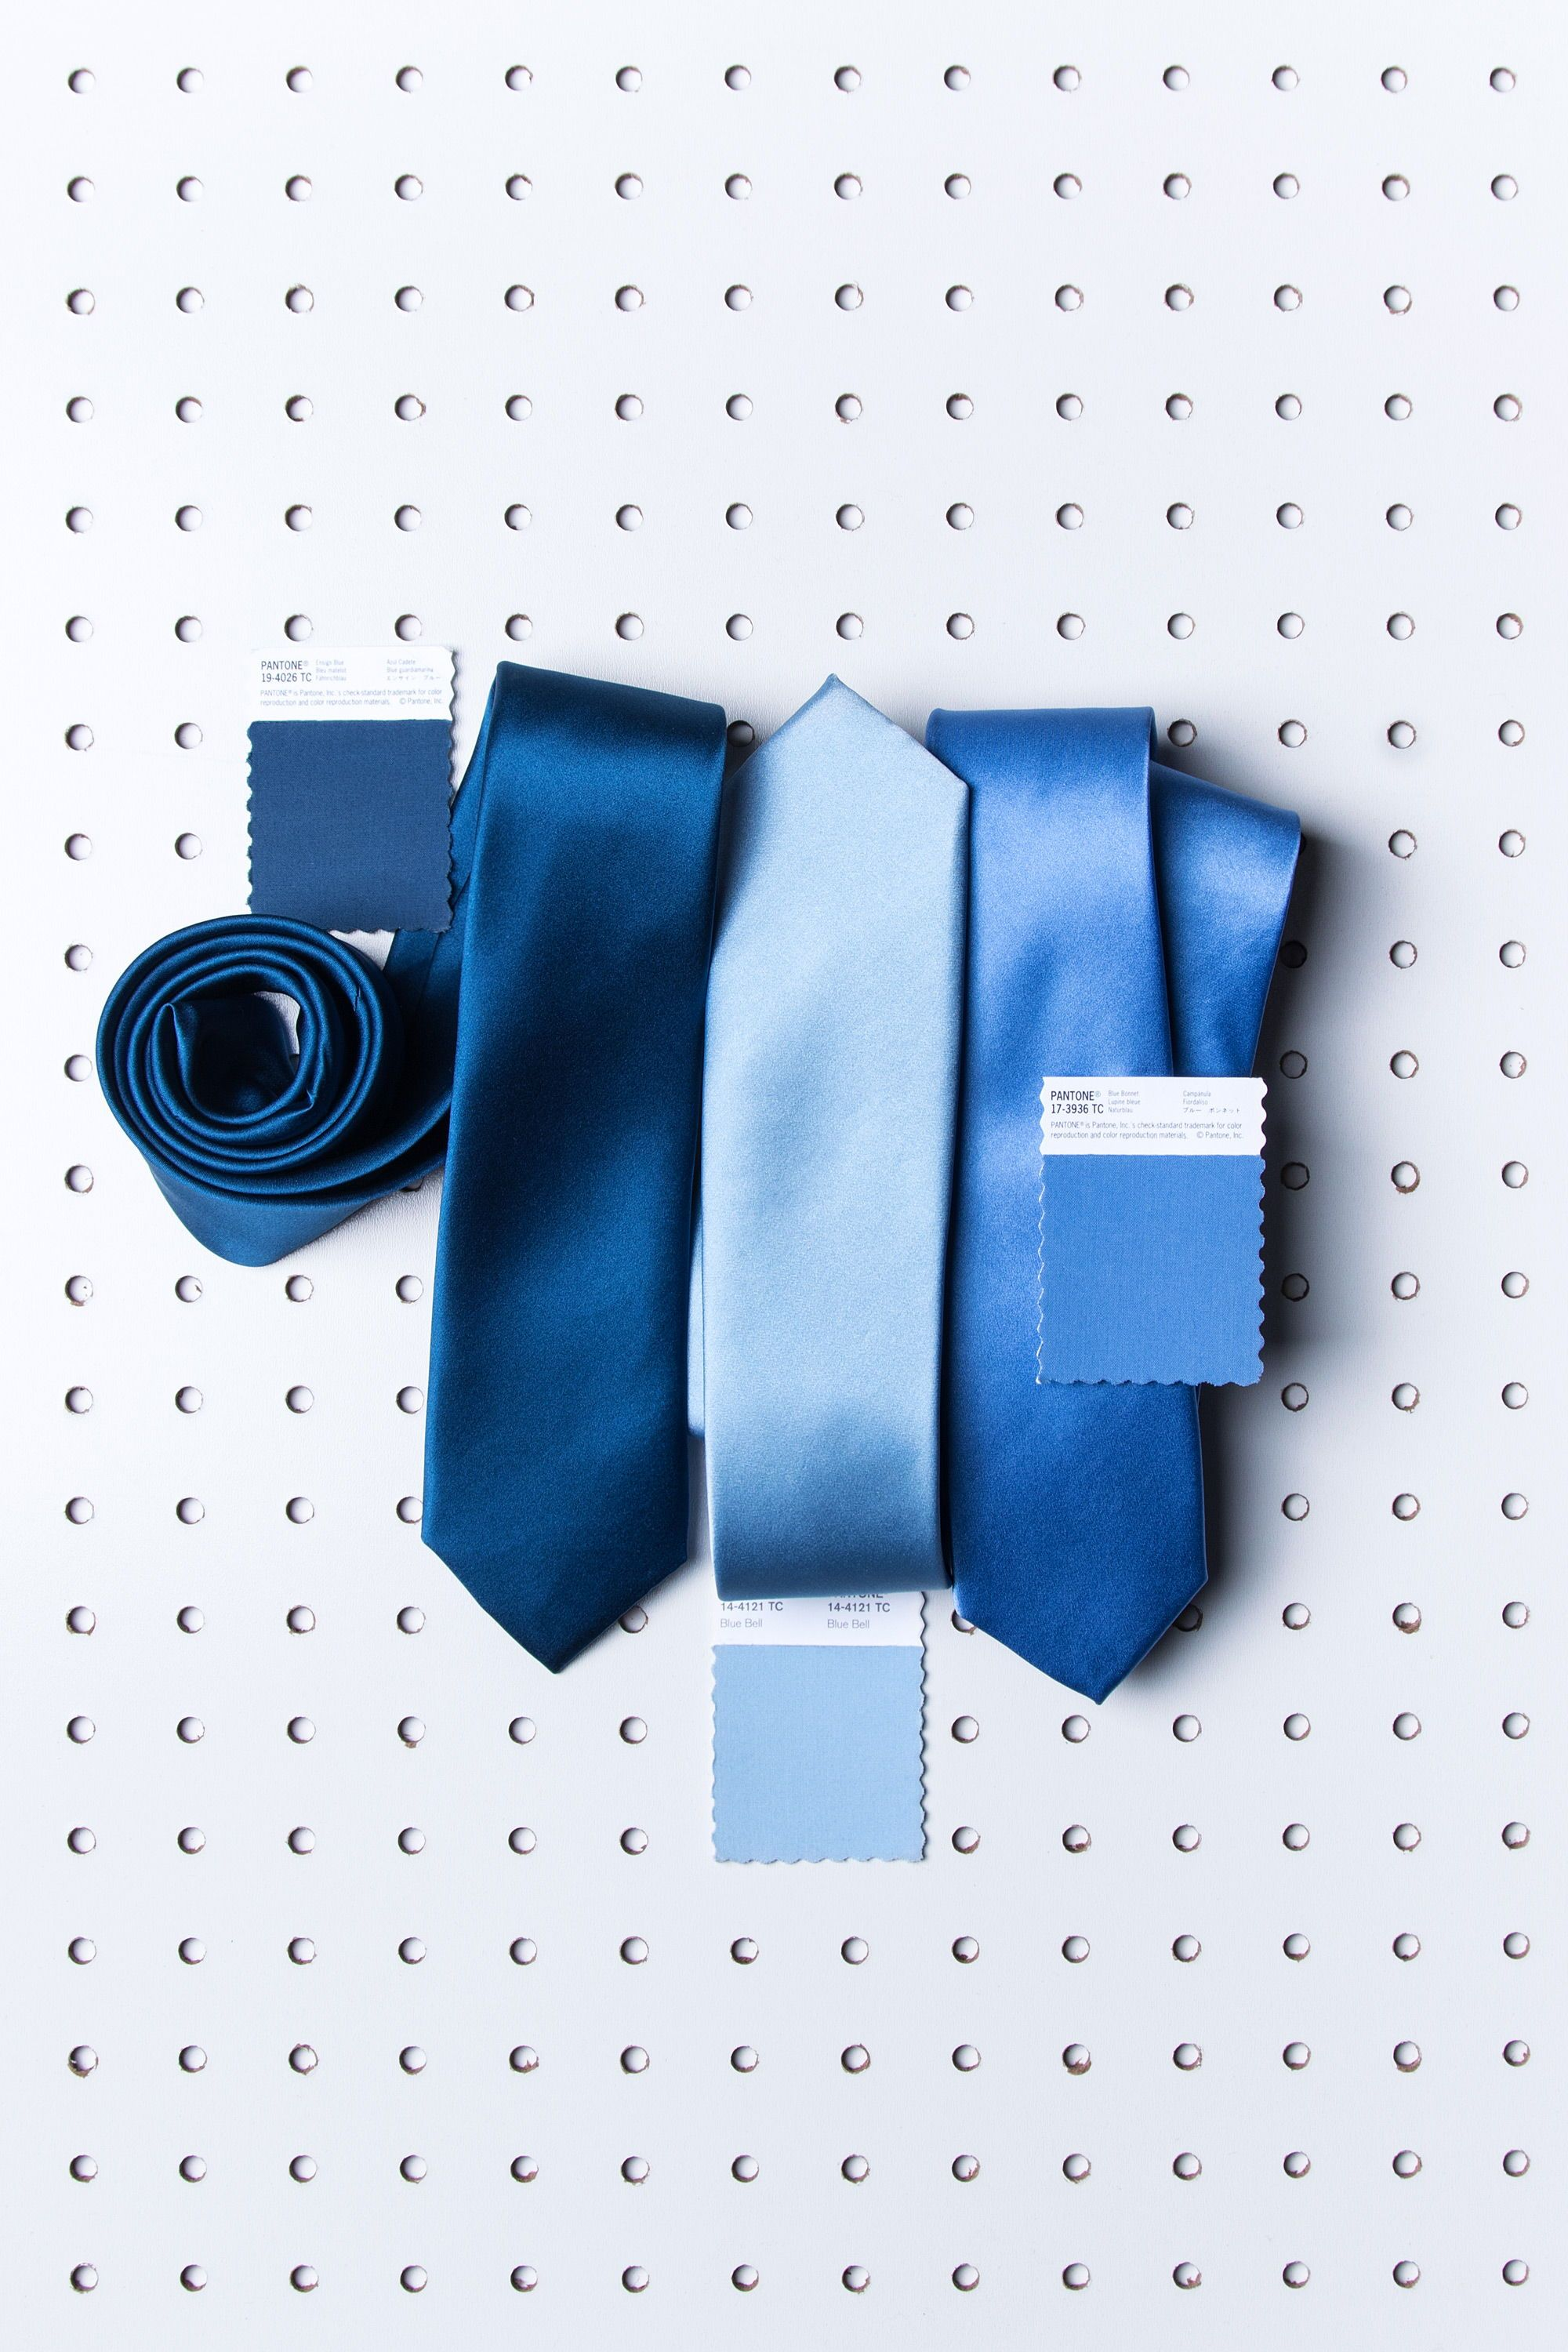 082dc375bc9ed Which shade will you choose? #tiesdotcom #mensstyle #businessformal  #neckwear